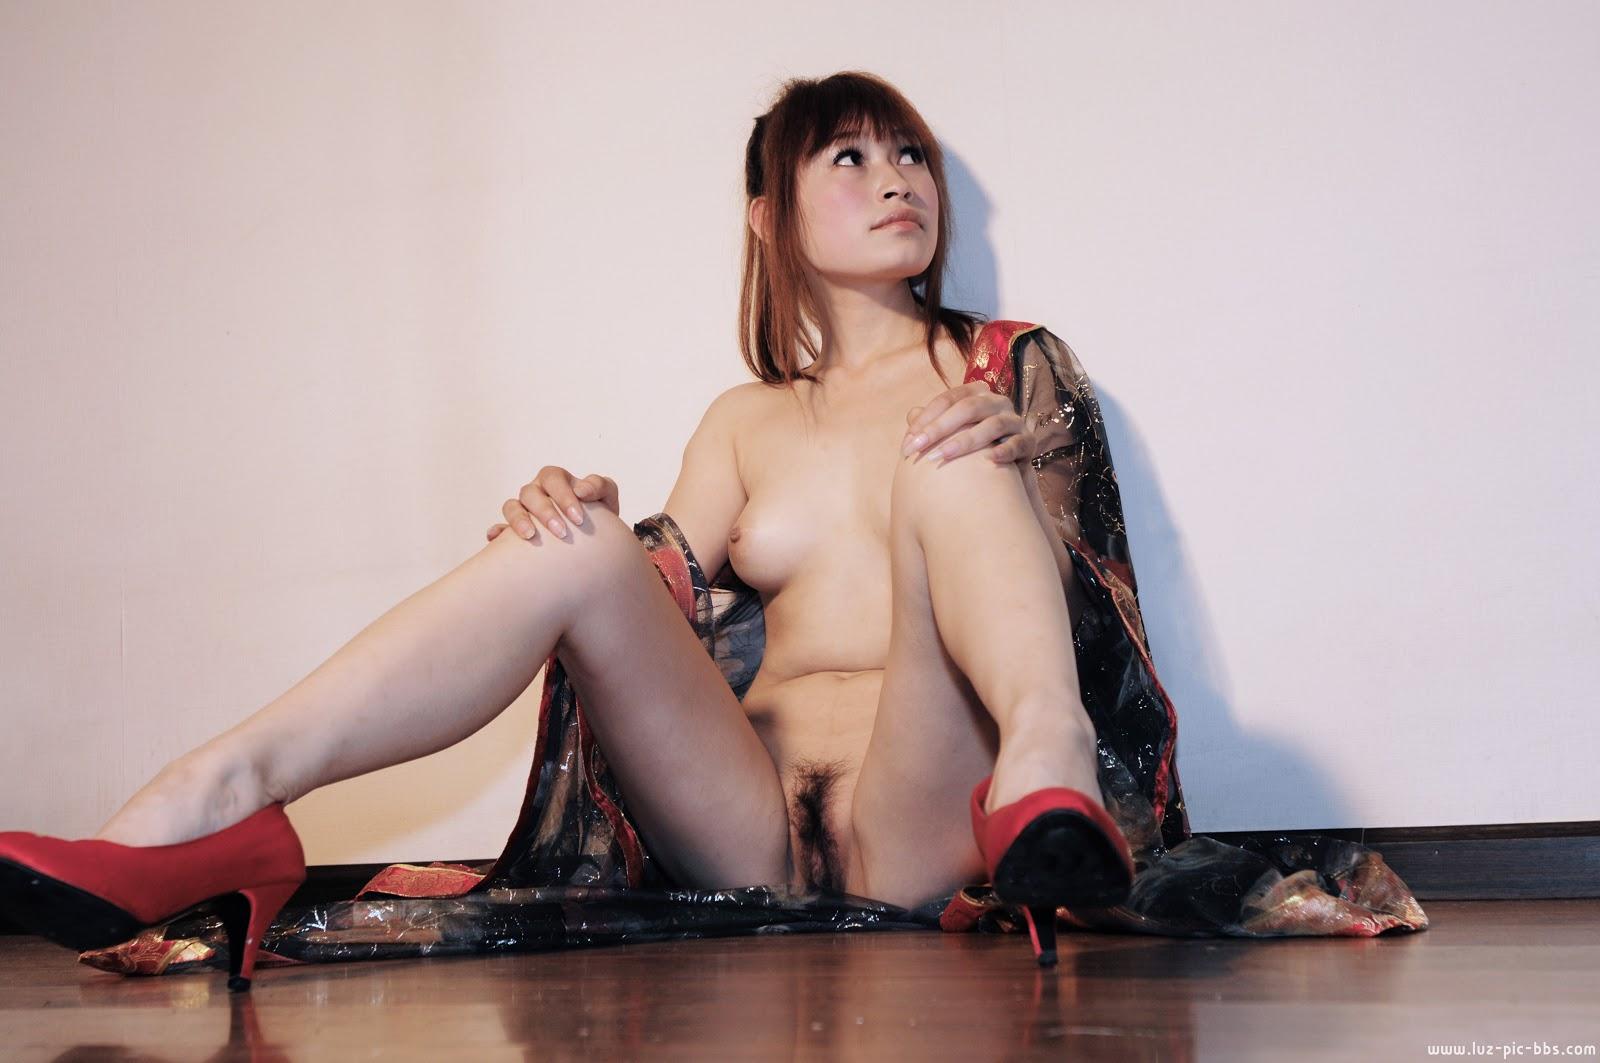 Chinese Nude_Art_Photos_-_263_-_YangYang_Vol_12.rar